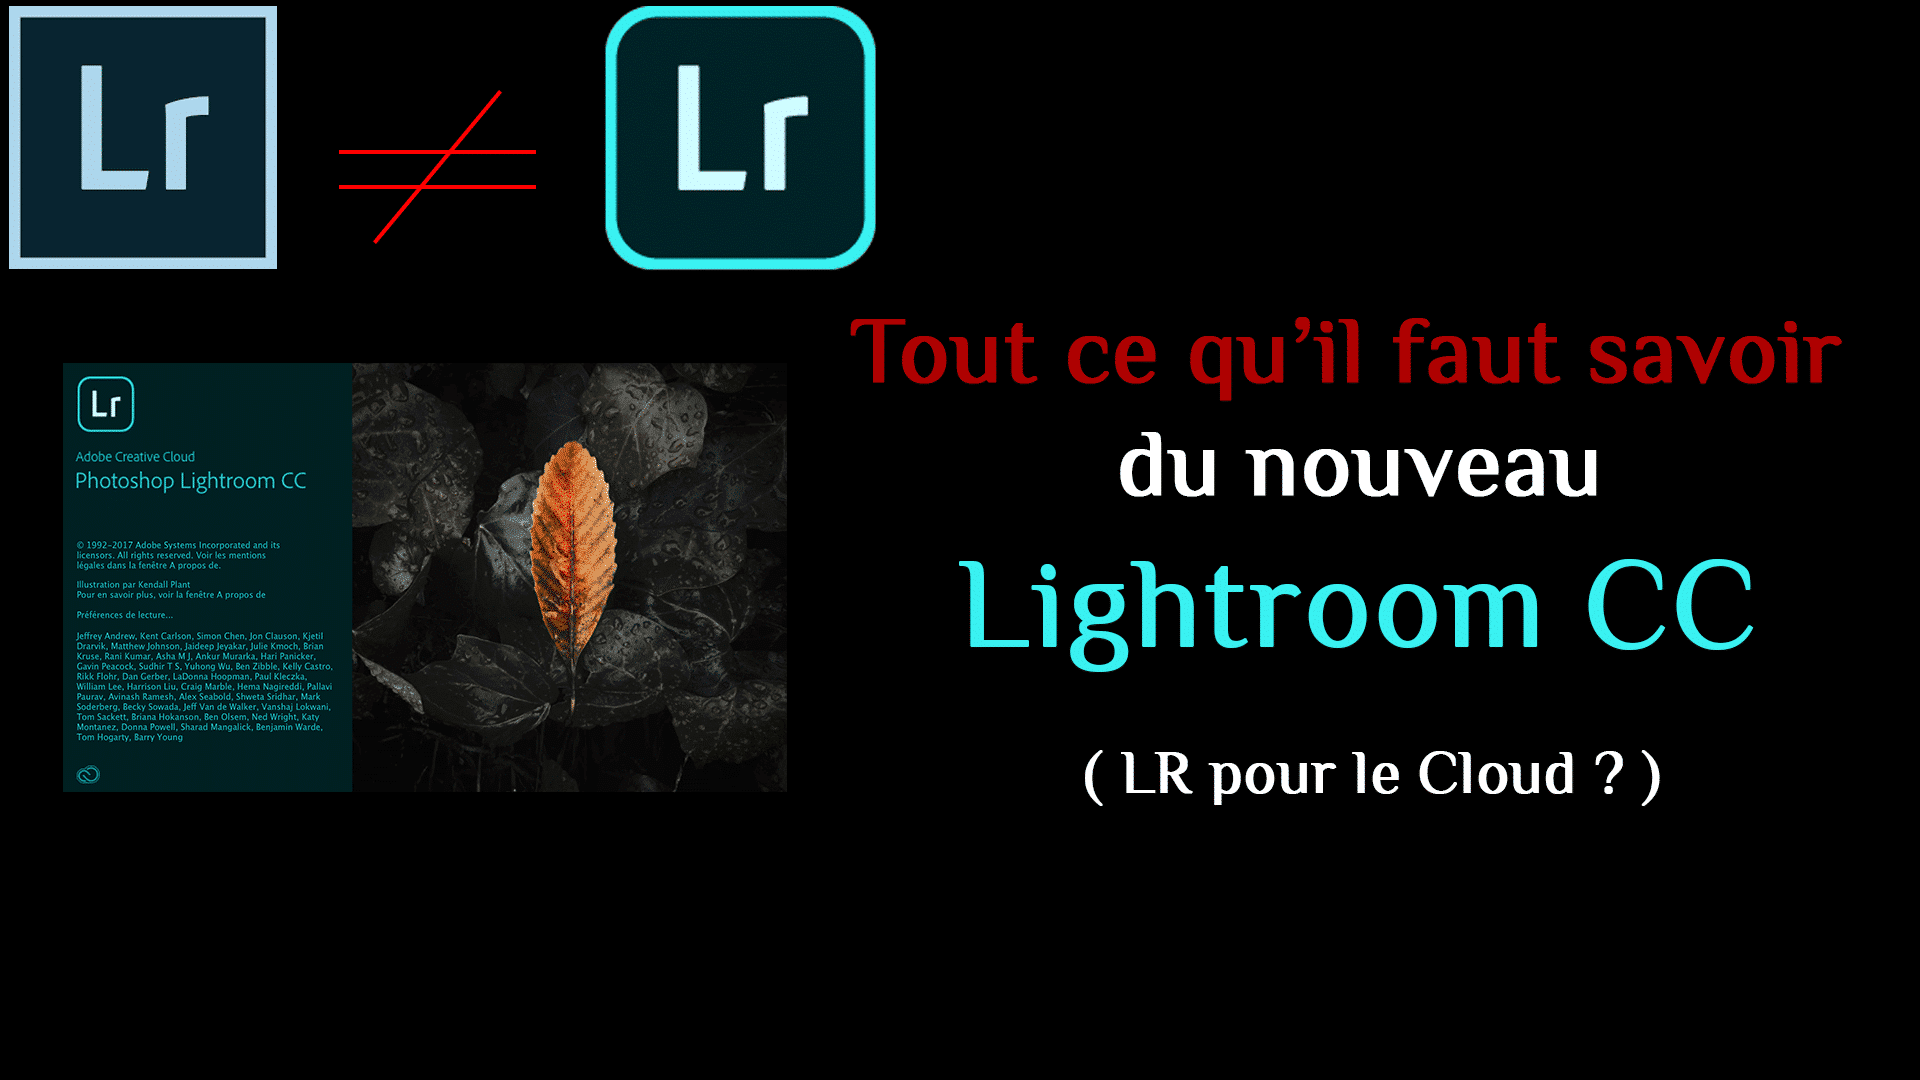 CLATM-LightroomCC(cloud)